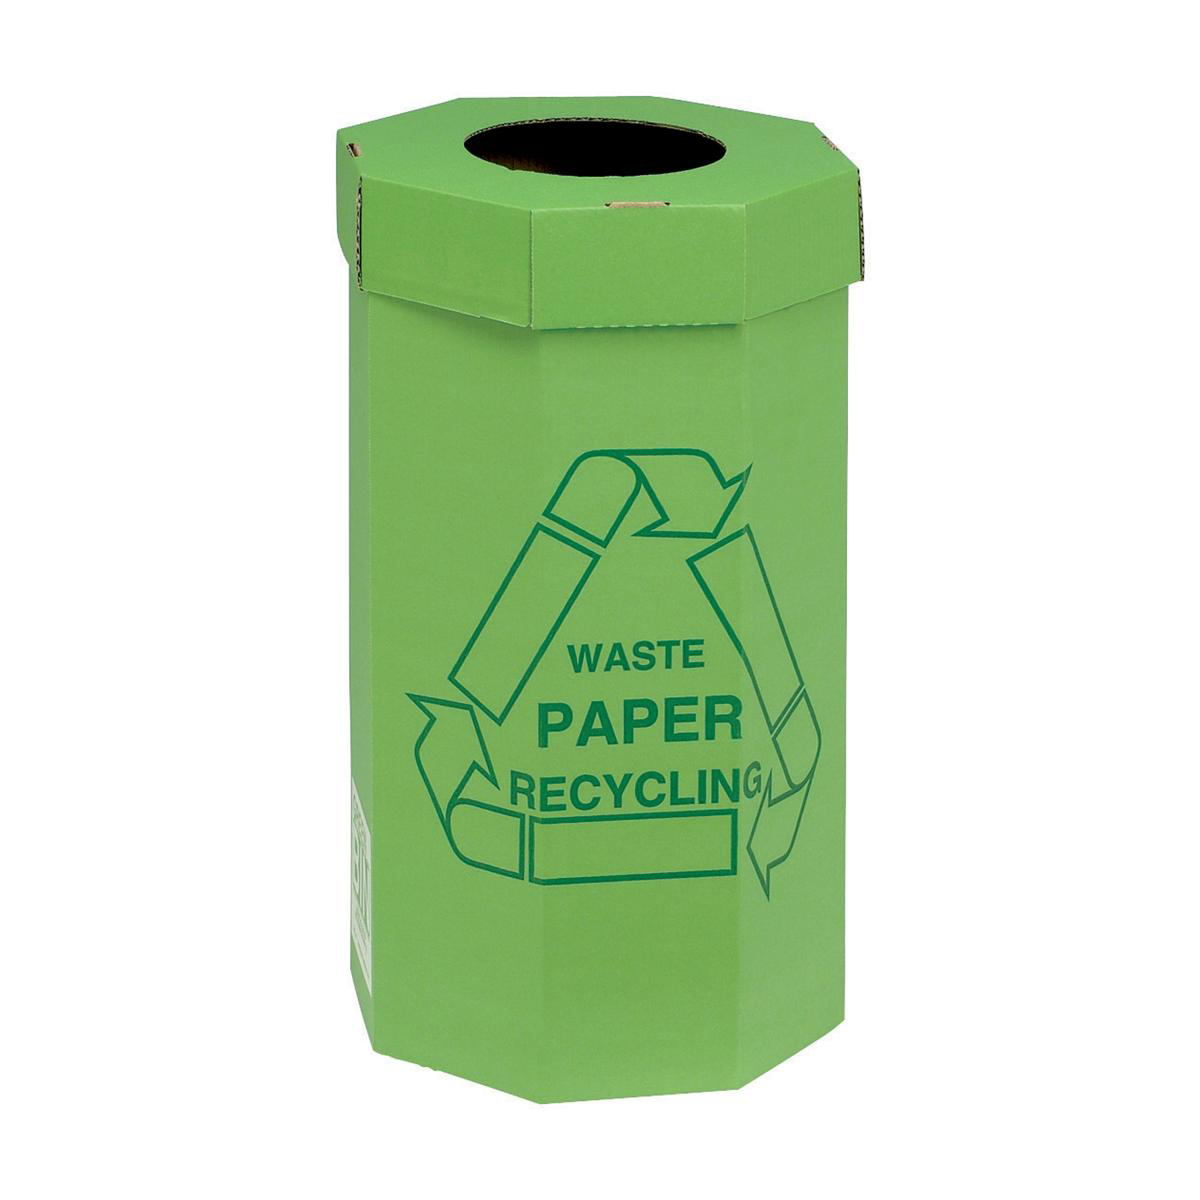 Recycling Bins Acorn Green Bin for Recycling Waste Capacity of 60 Litres 360x677mm Green Ref 402565 Pack 5